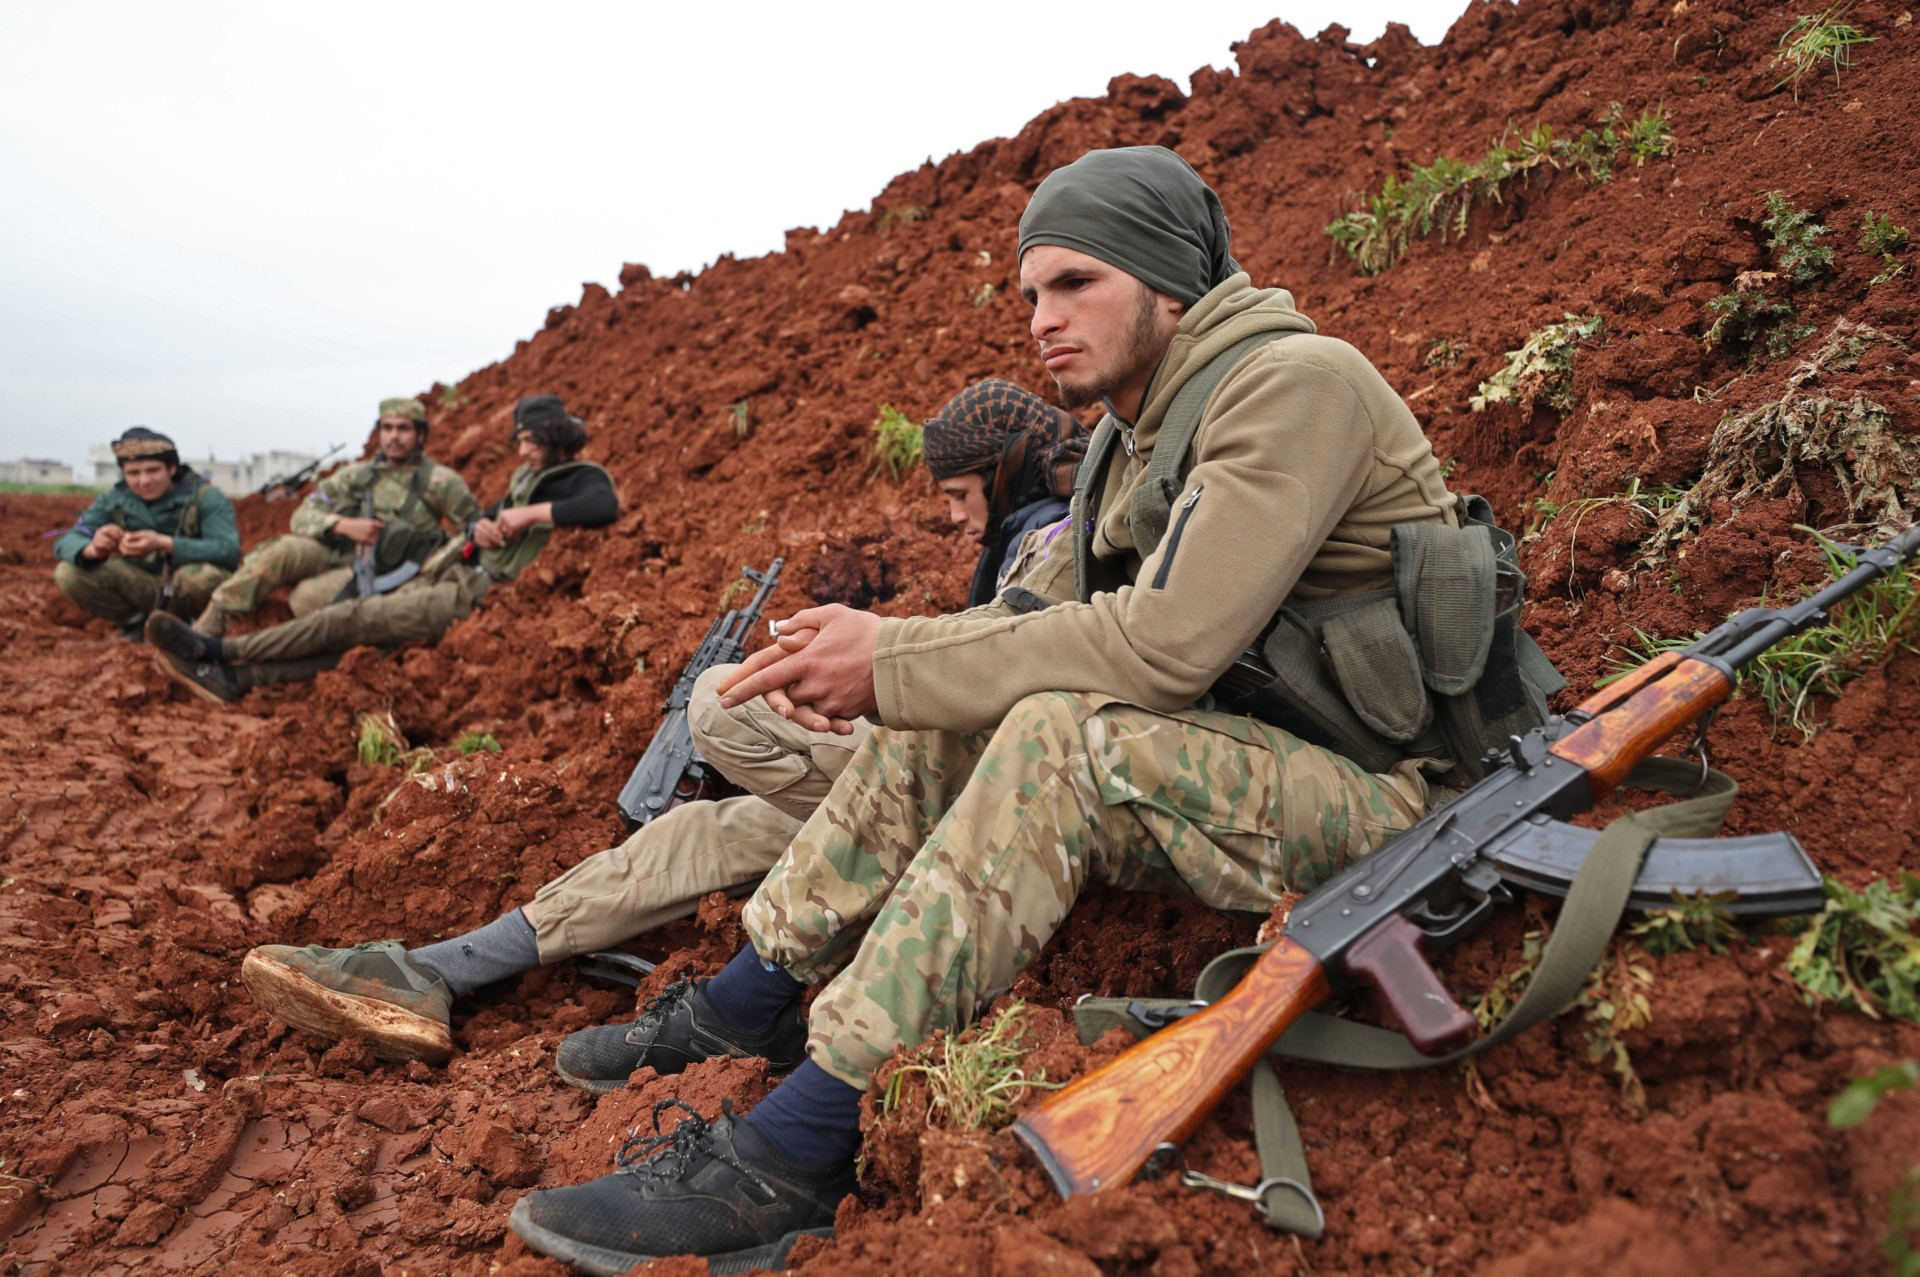 Syria's Wretched Foreign Legion